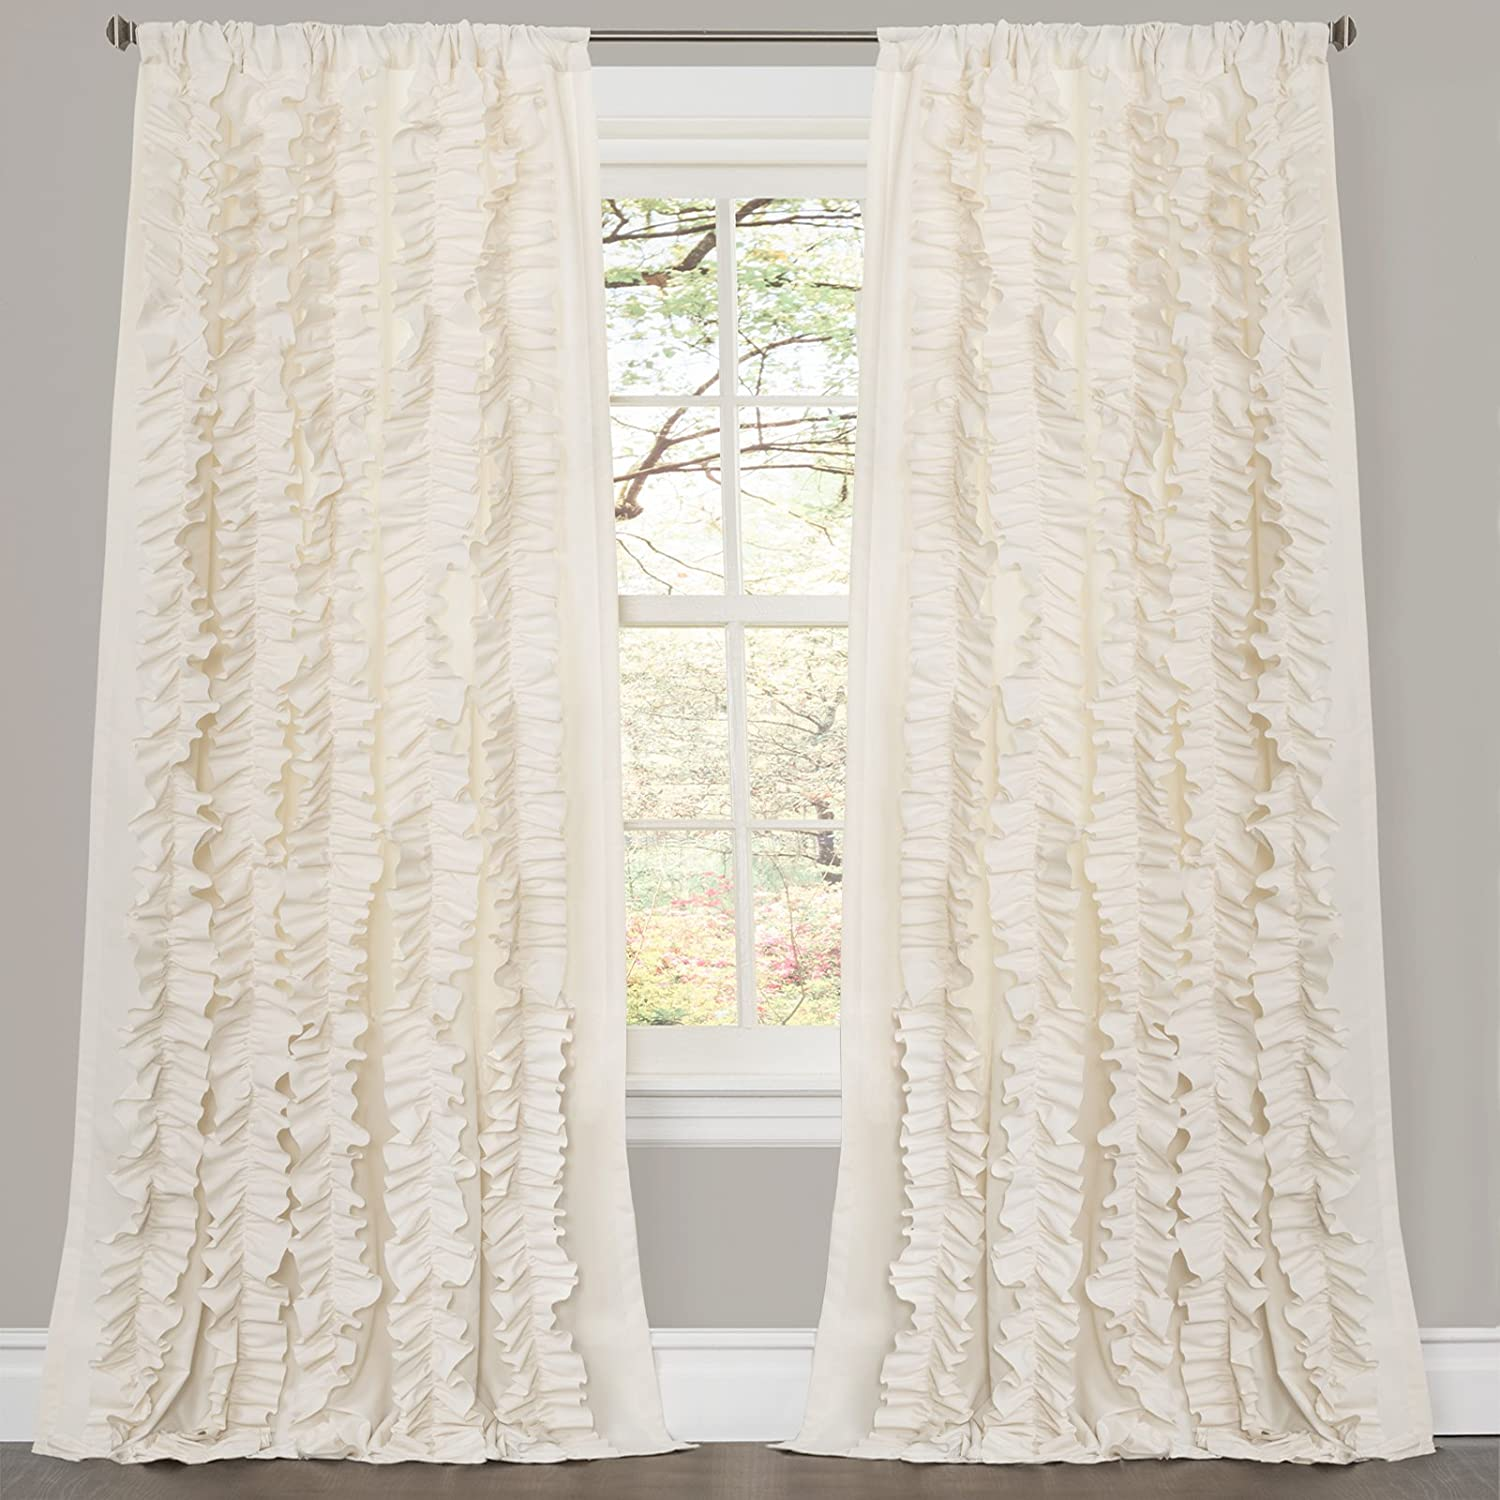 Lush Decor Lake Como Curtains Amazoncom Lush Decor Belle Curtain 84 X 54 Inches Ivory Home